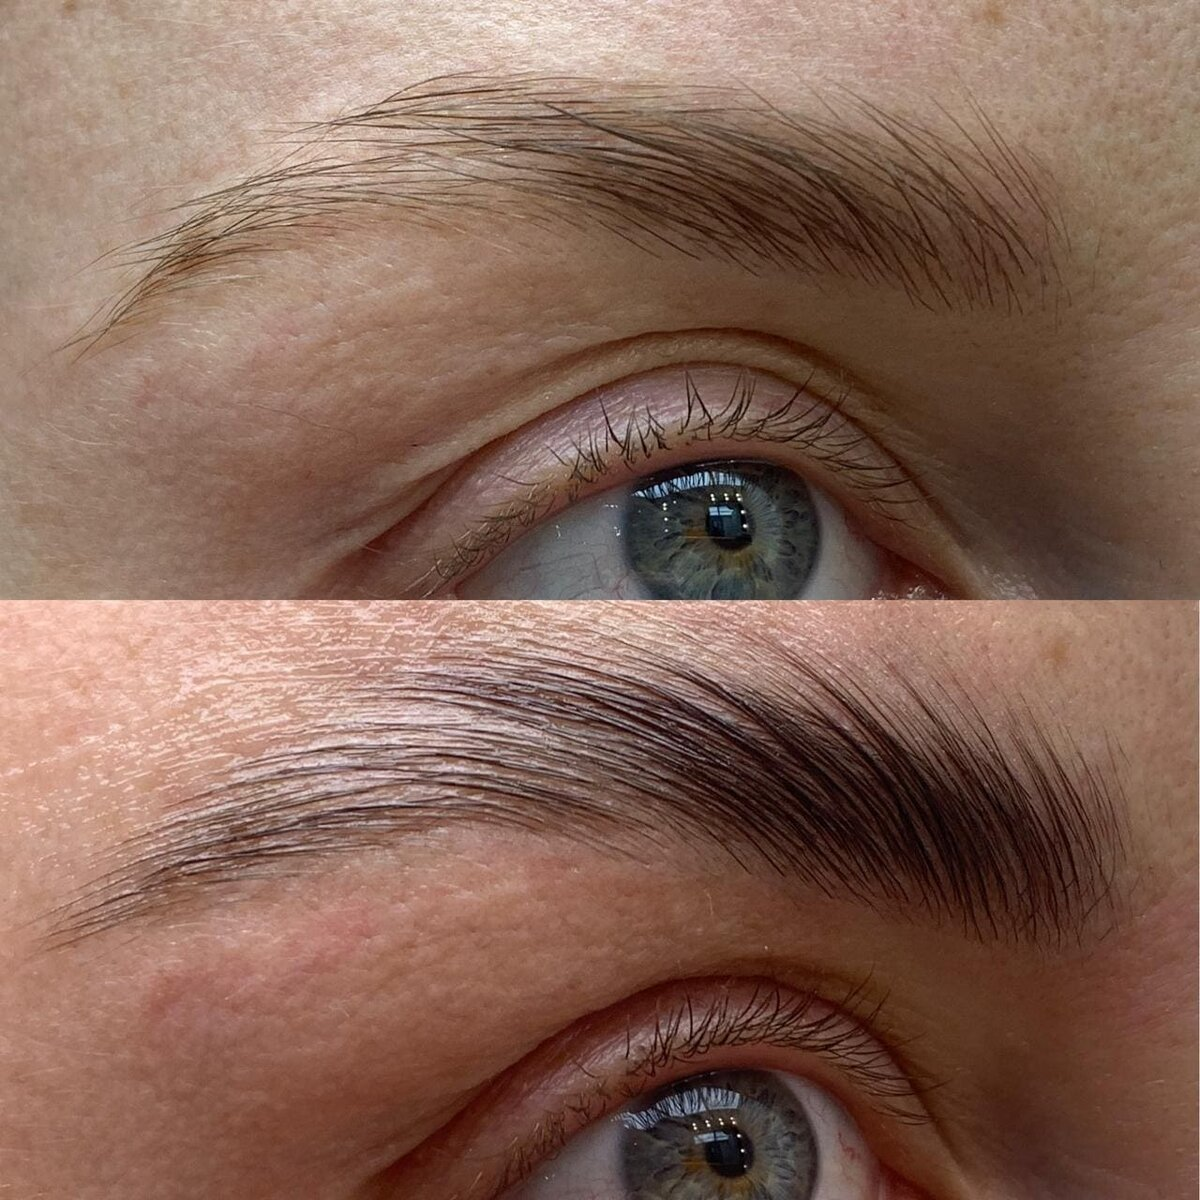 How does laminating eyebrows differ from long-term styling